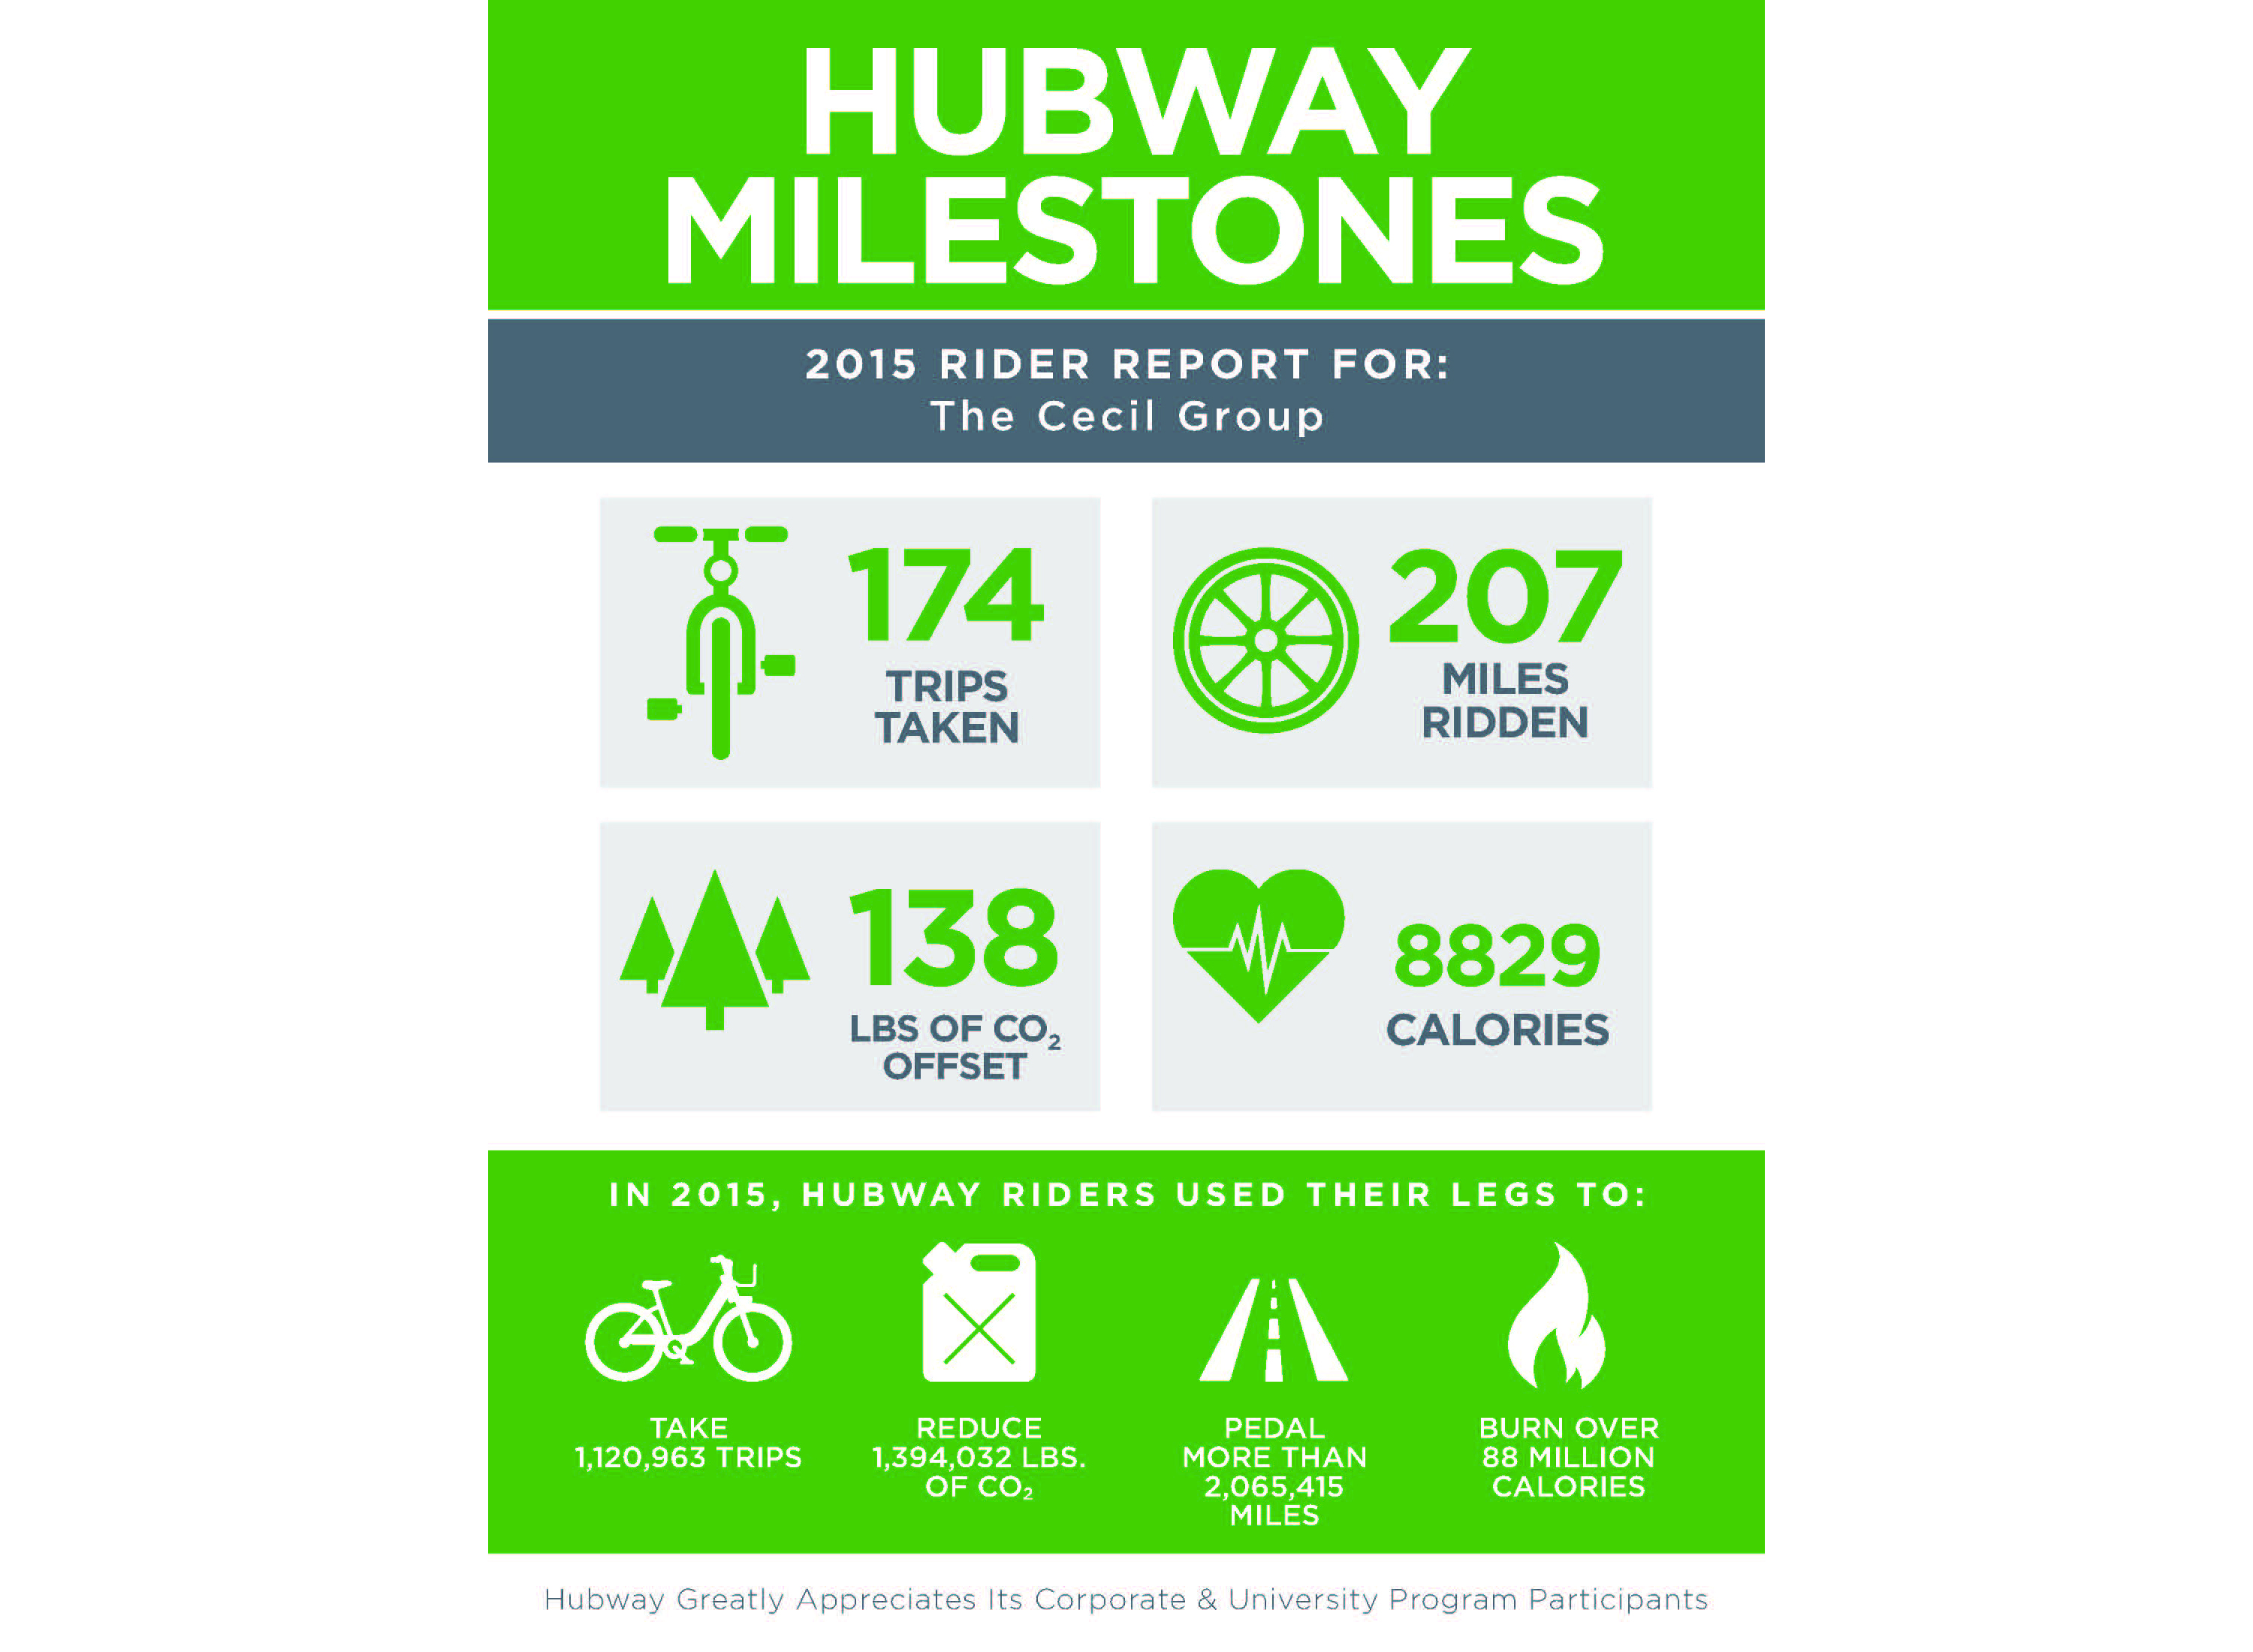 hubway-infographic-2015-the-cecil-group